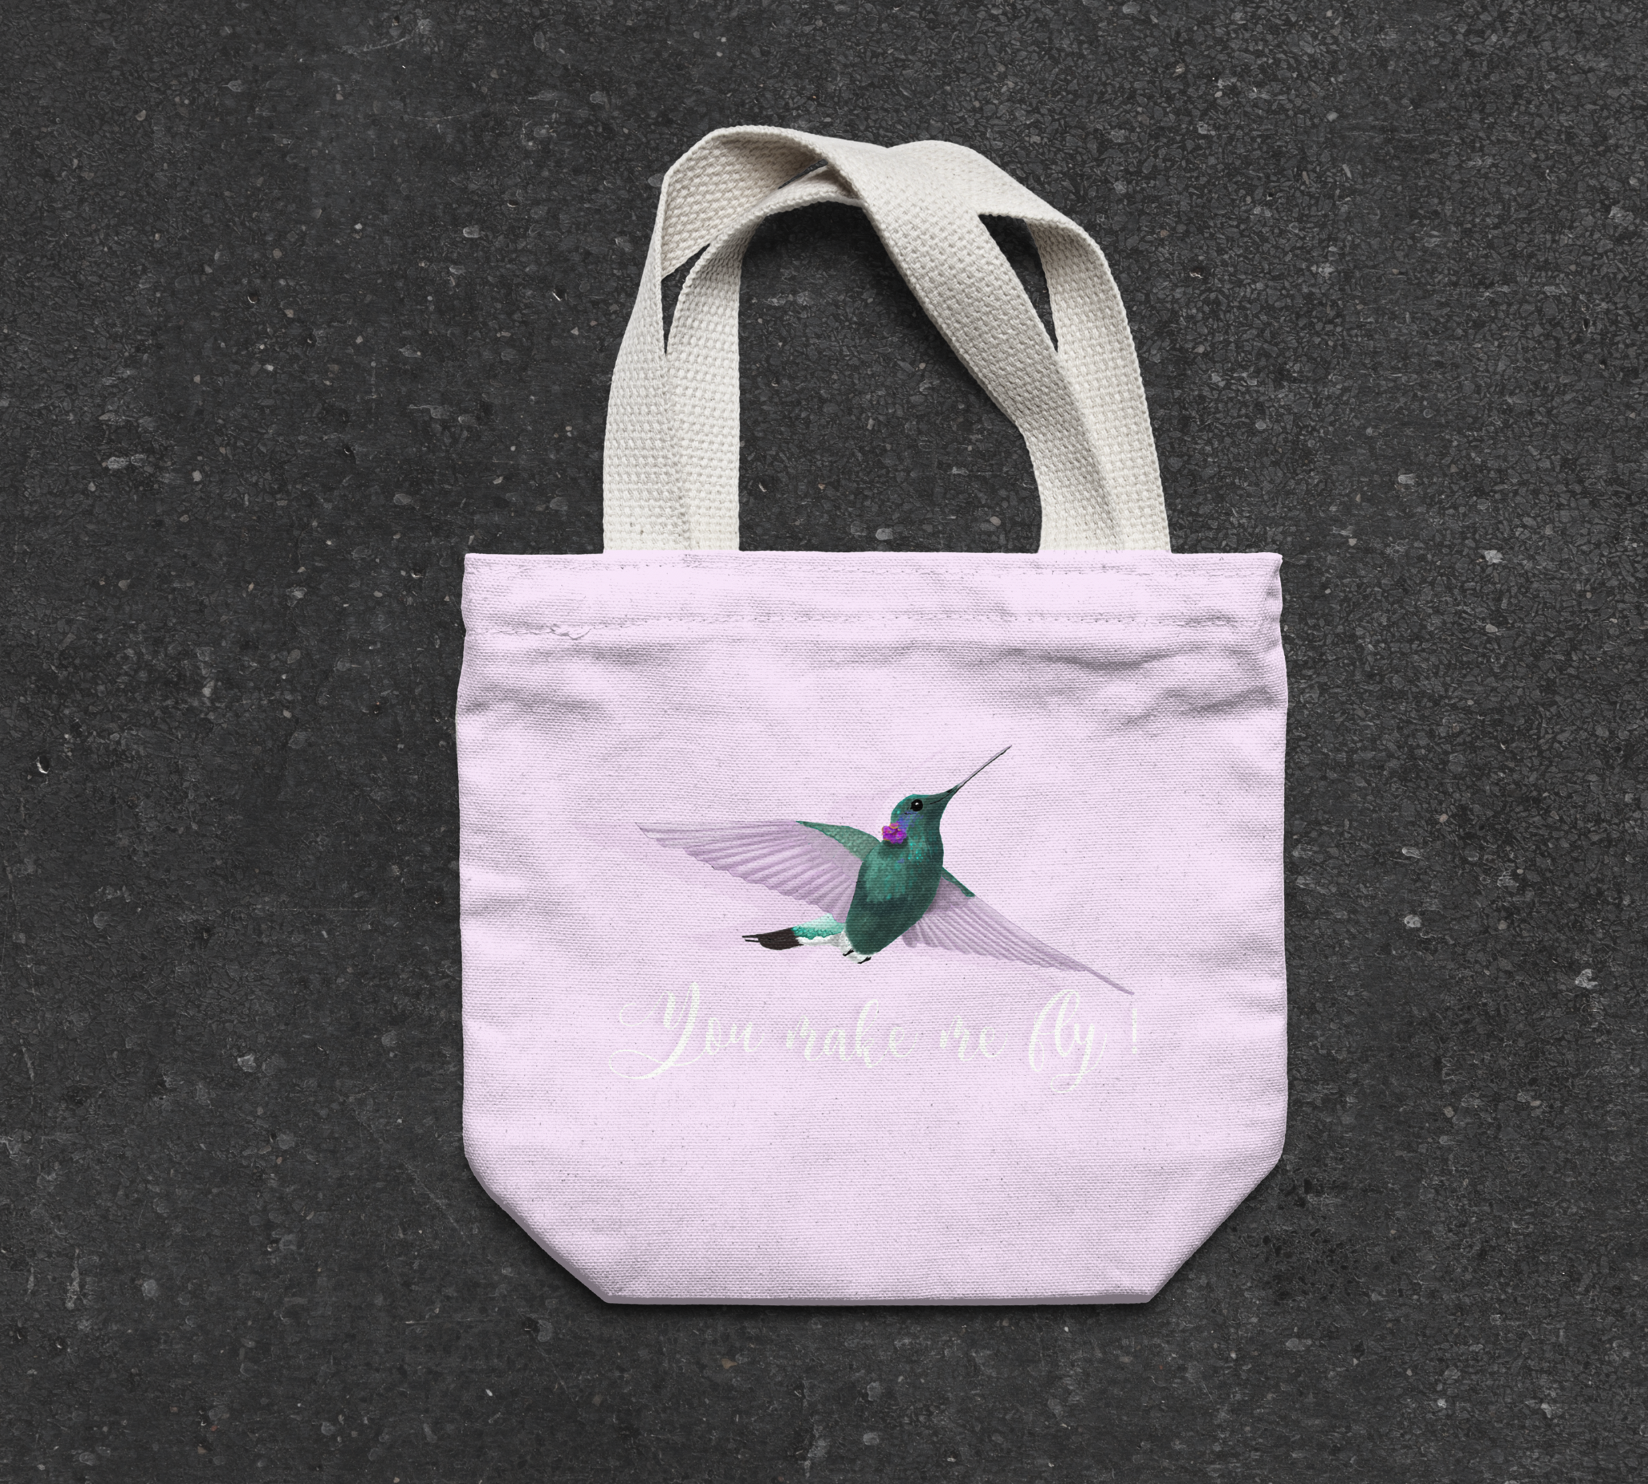 Humming bird tote bag by Cri Cri Studio